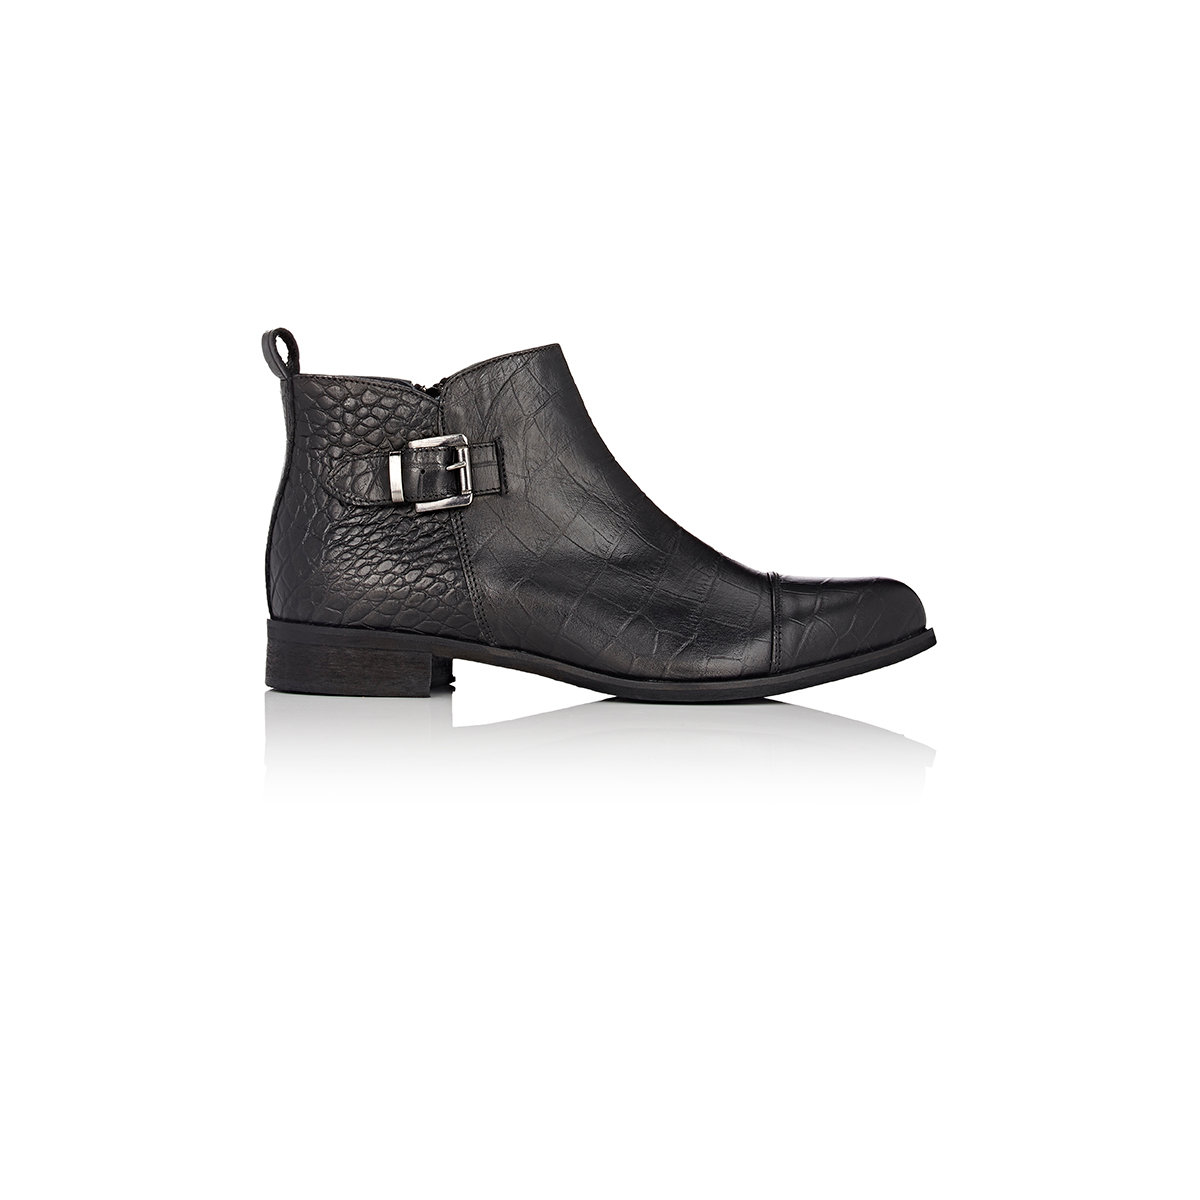 barneys new york buckle ankle boots in black lyst